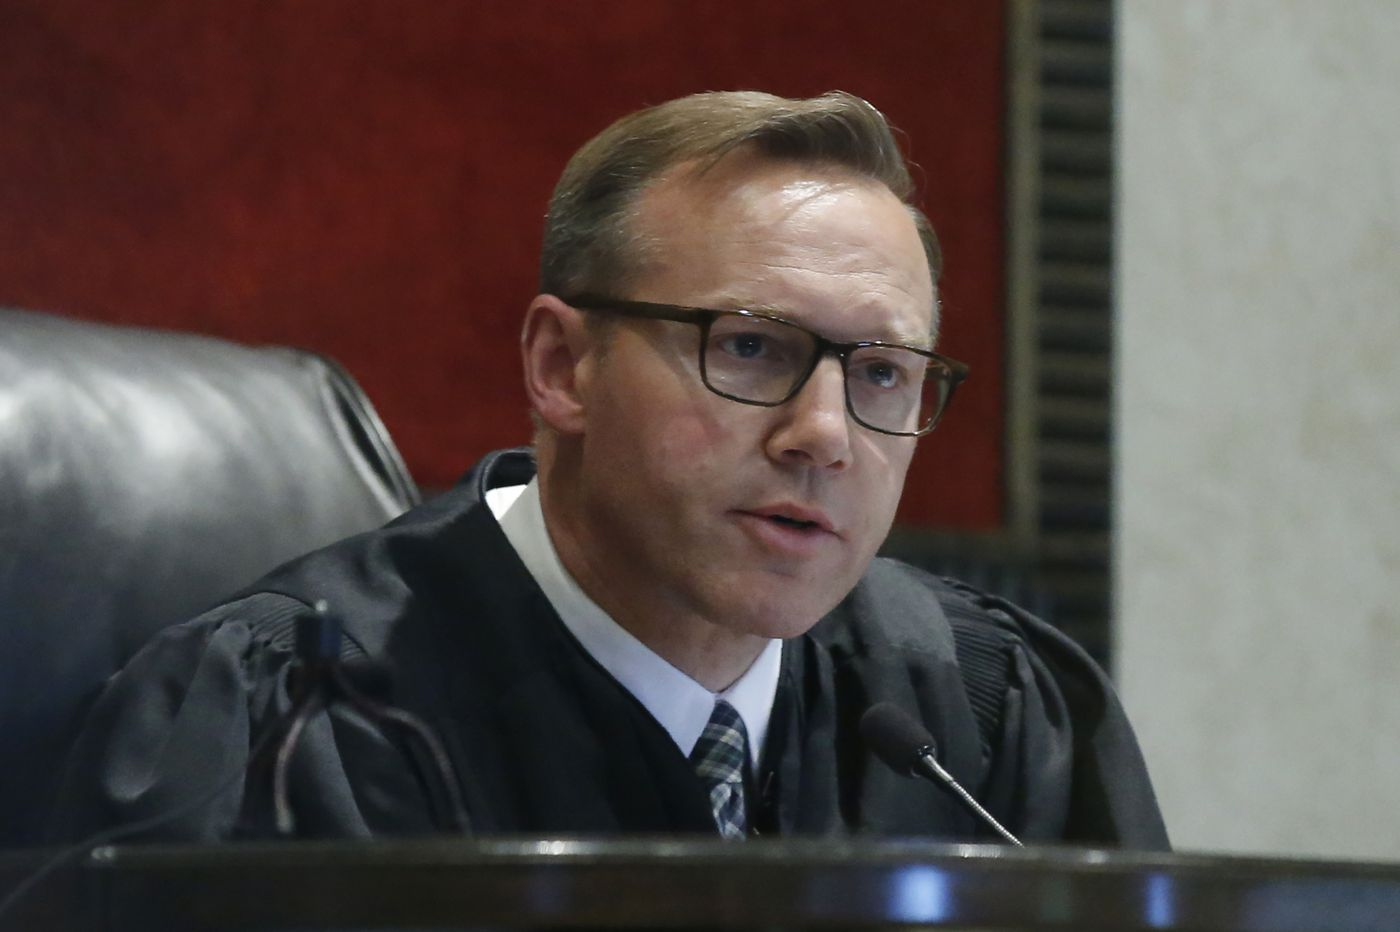 Oklahoma judge signs state's $85M settlement with opioid drugmaker Teva